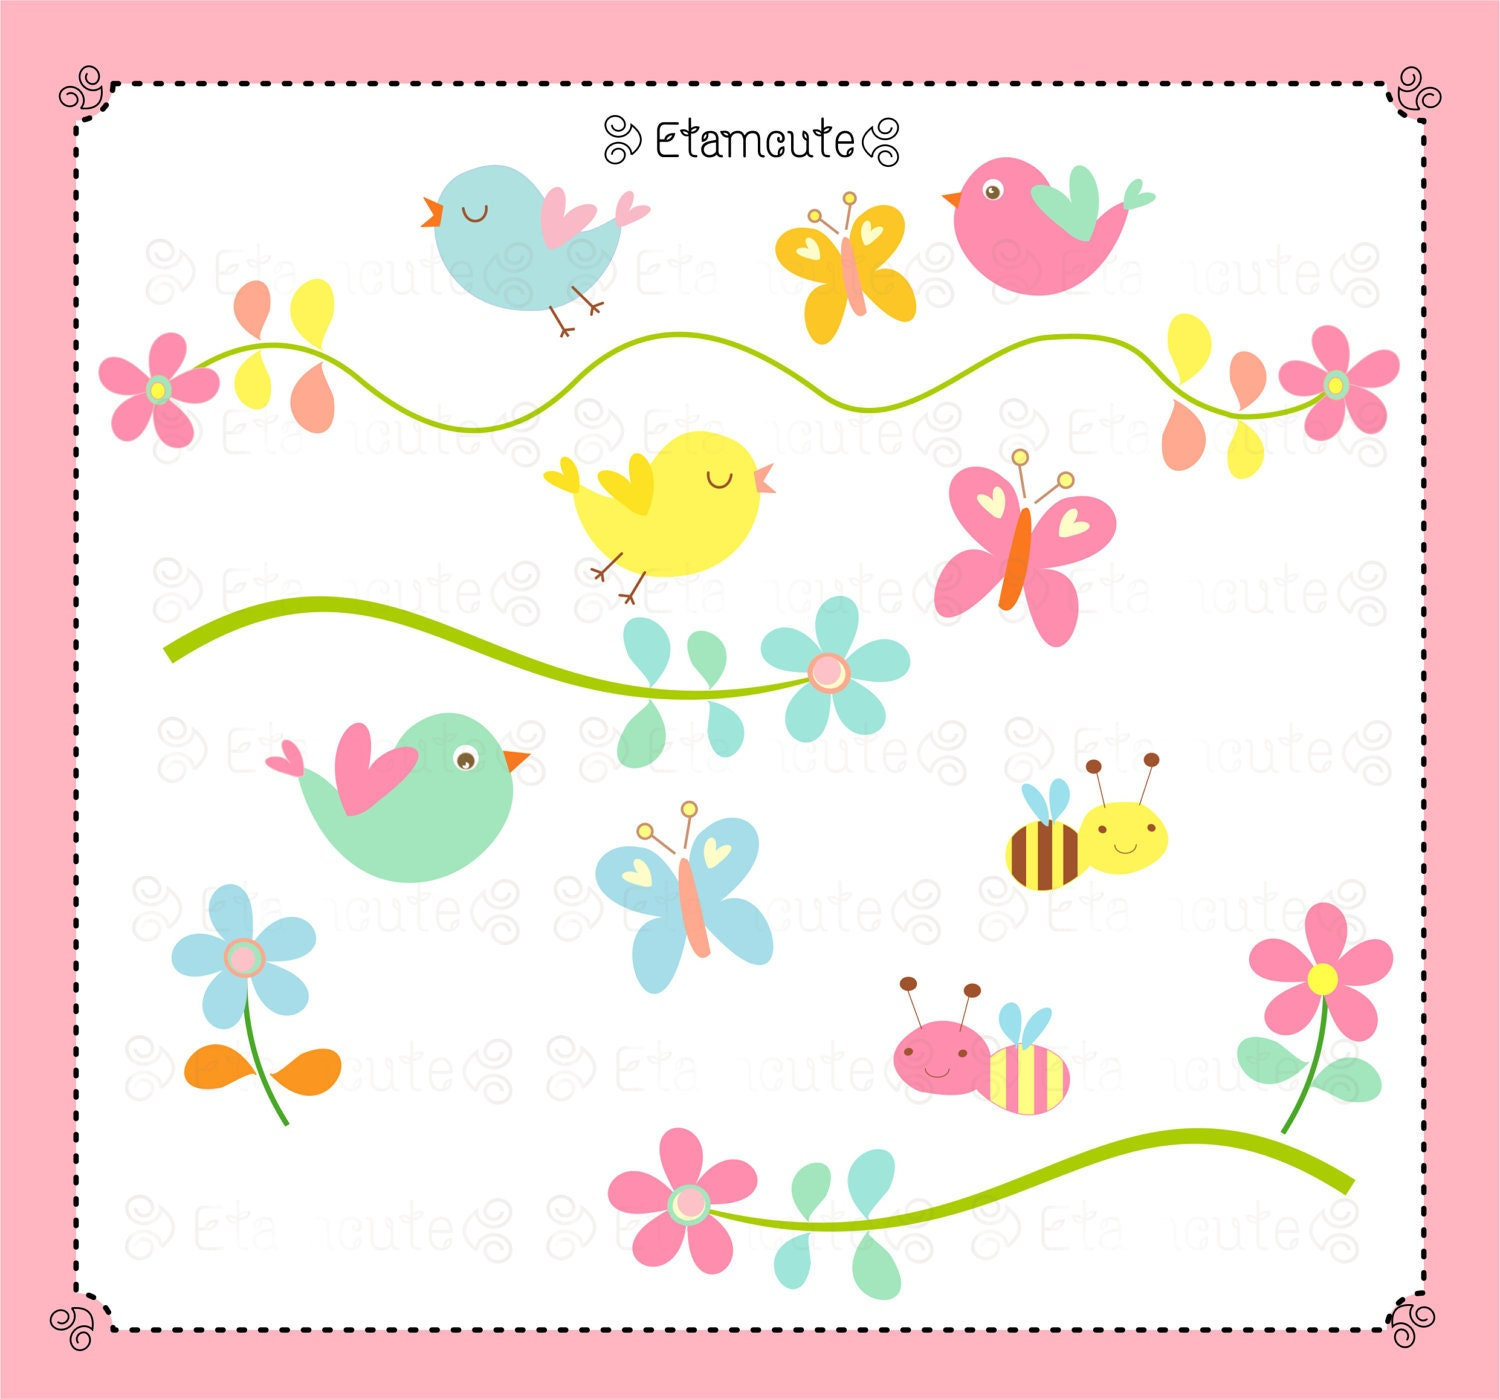 Bird clip art butterfly flower bee instant download by for Art sites like etsy